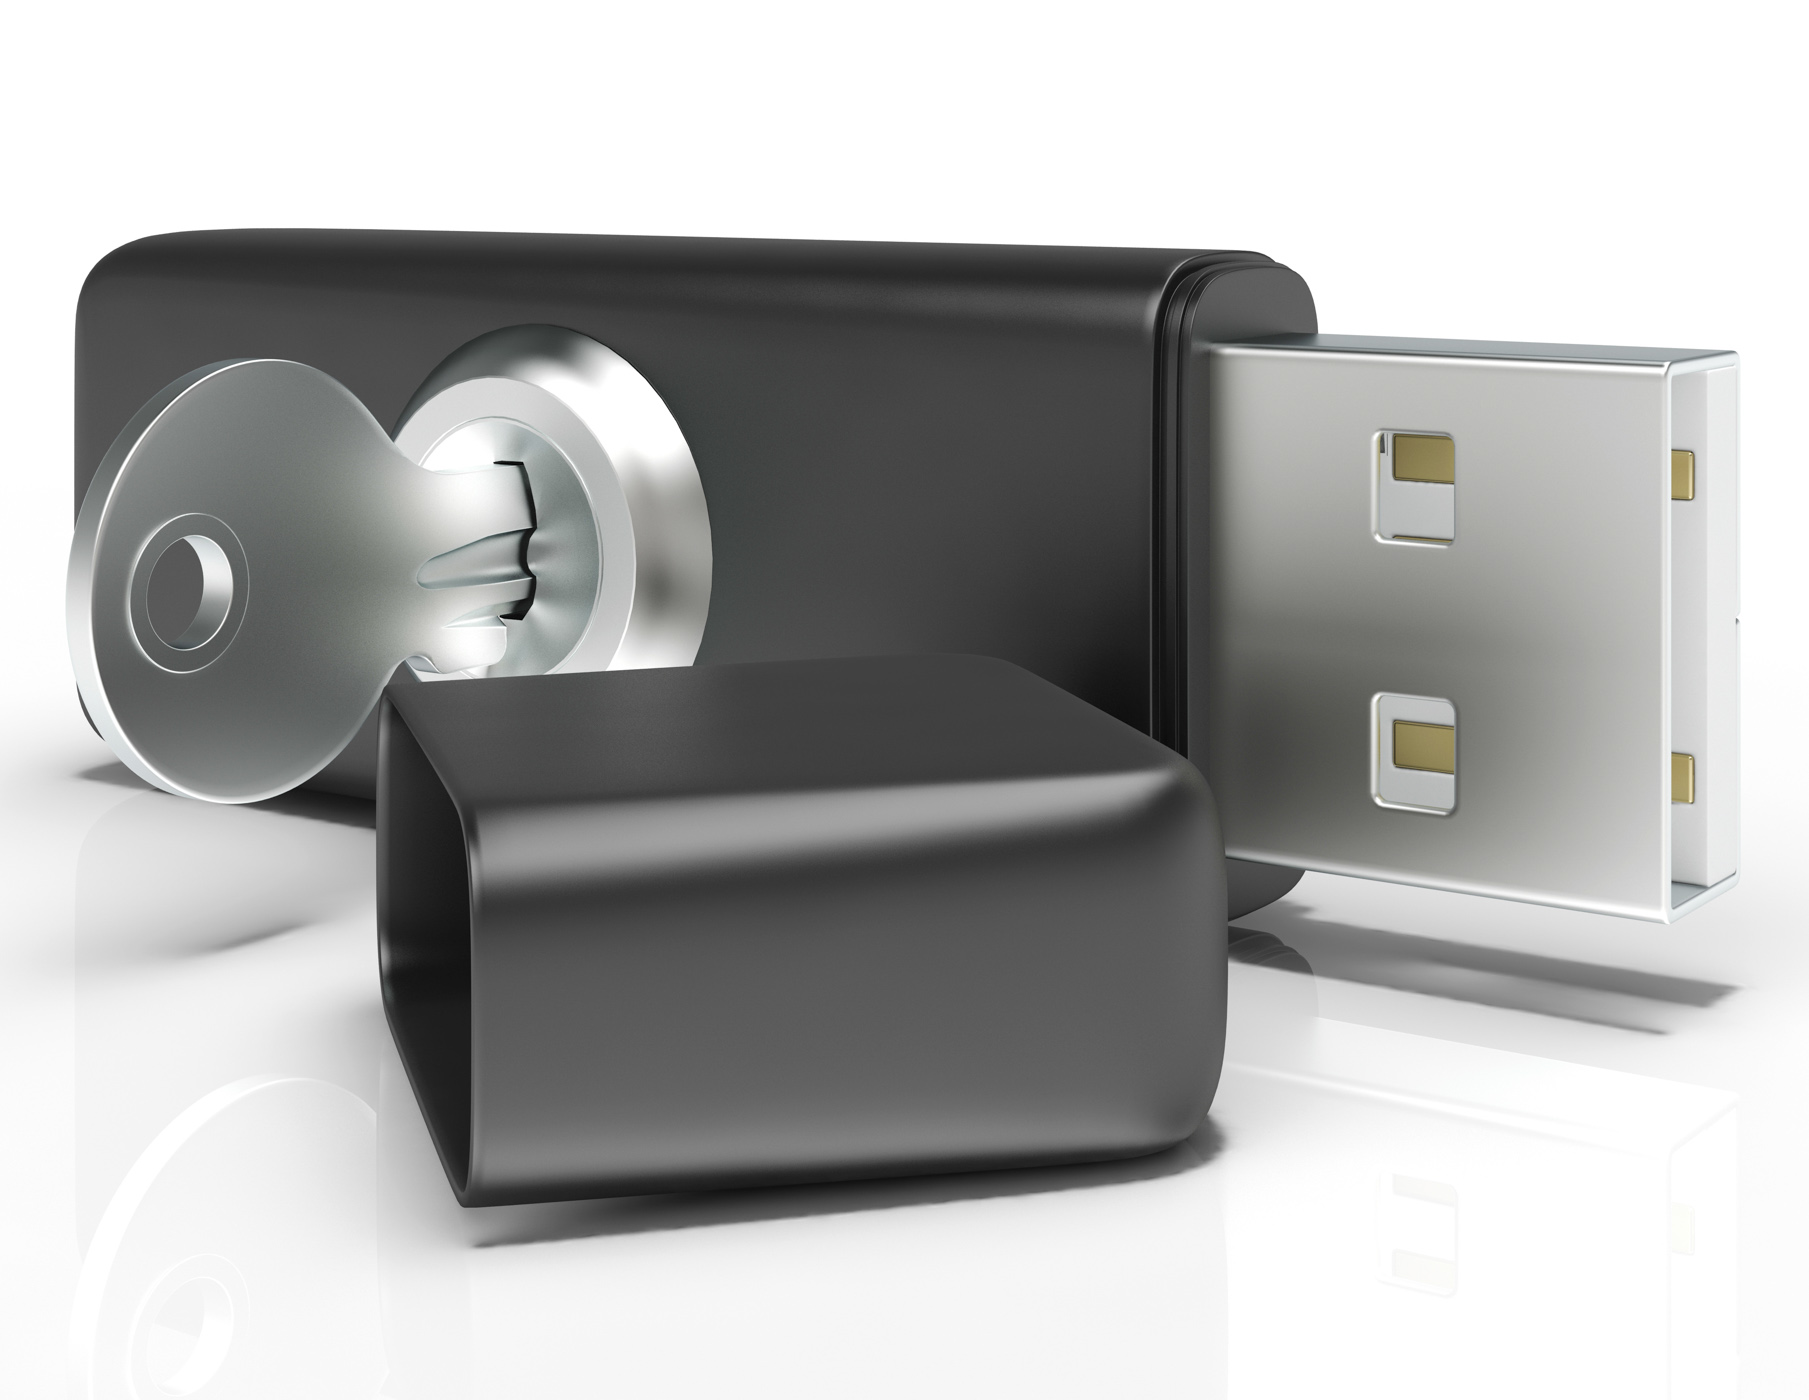 Usb flash and key shows secure portable storage photo